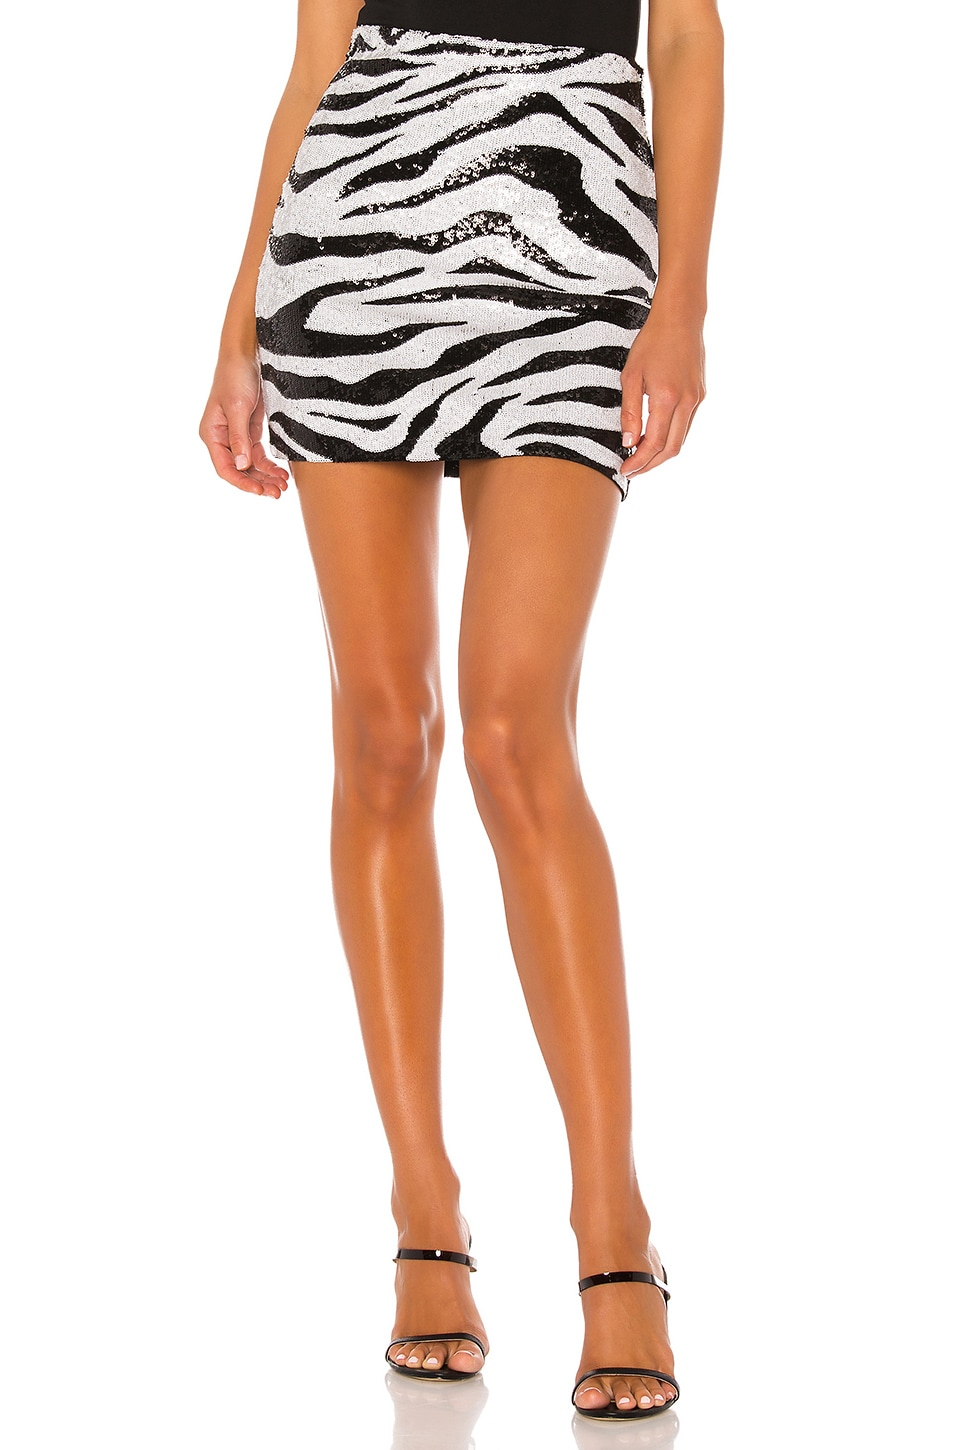 Alice + Olivia Ramos Sequin Fitted Mini Skirt in LG Tiger SFT White & Black